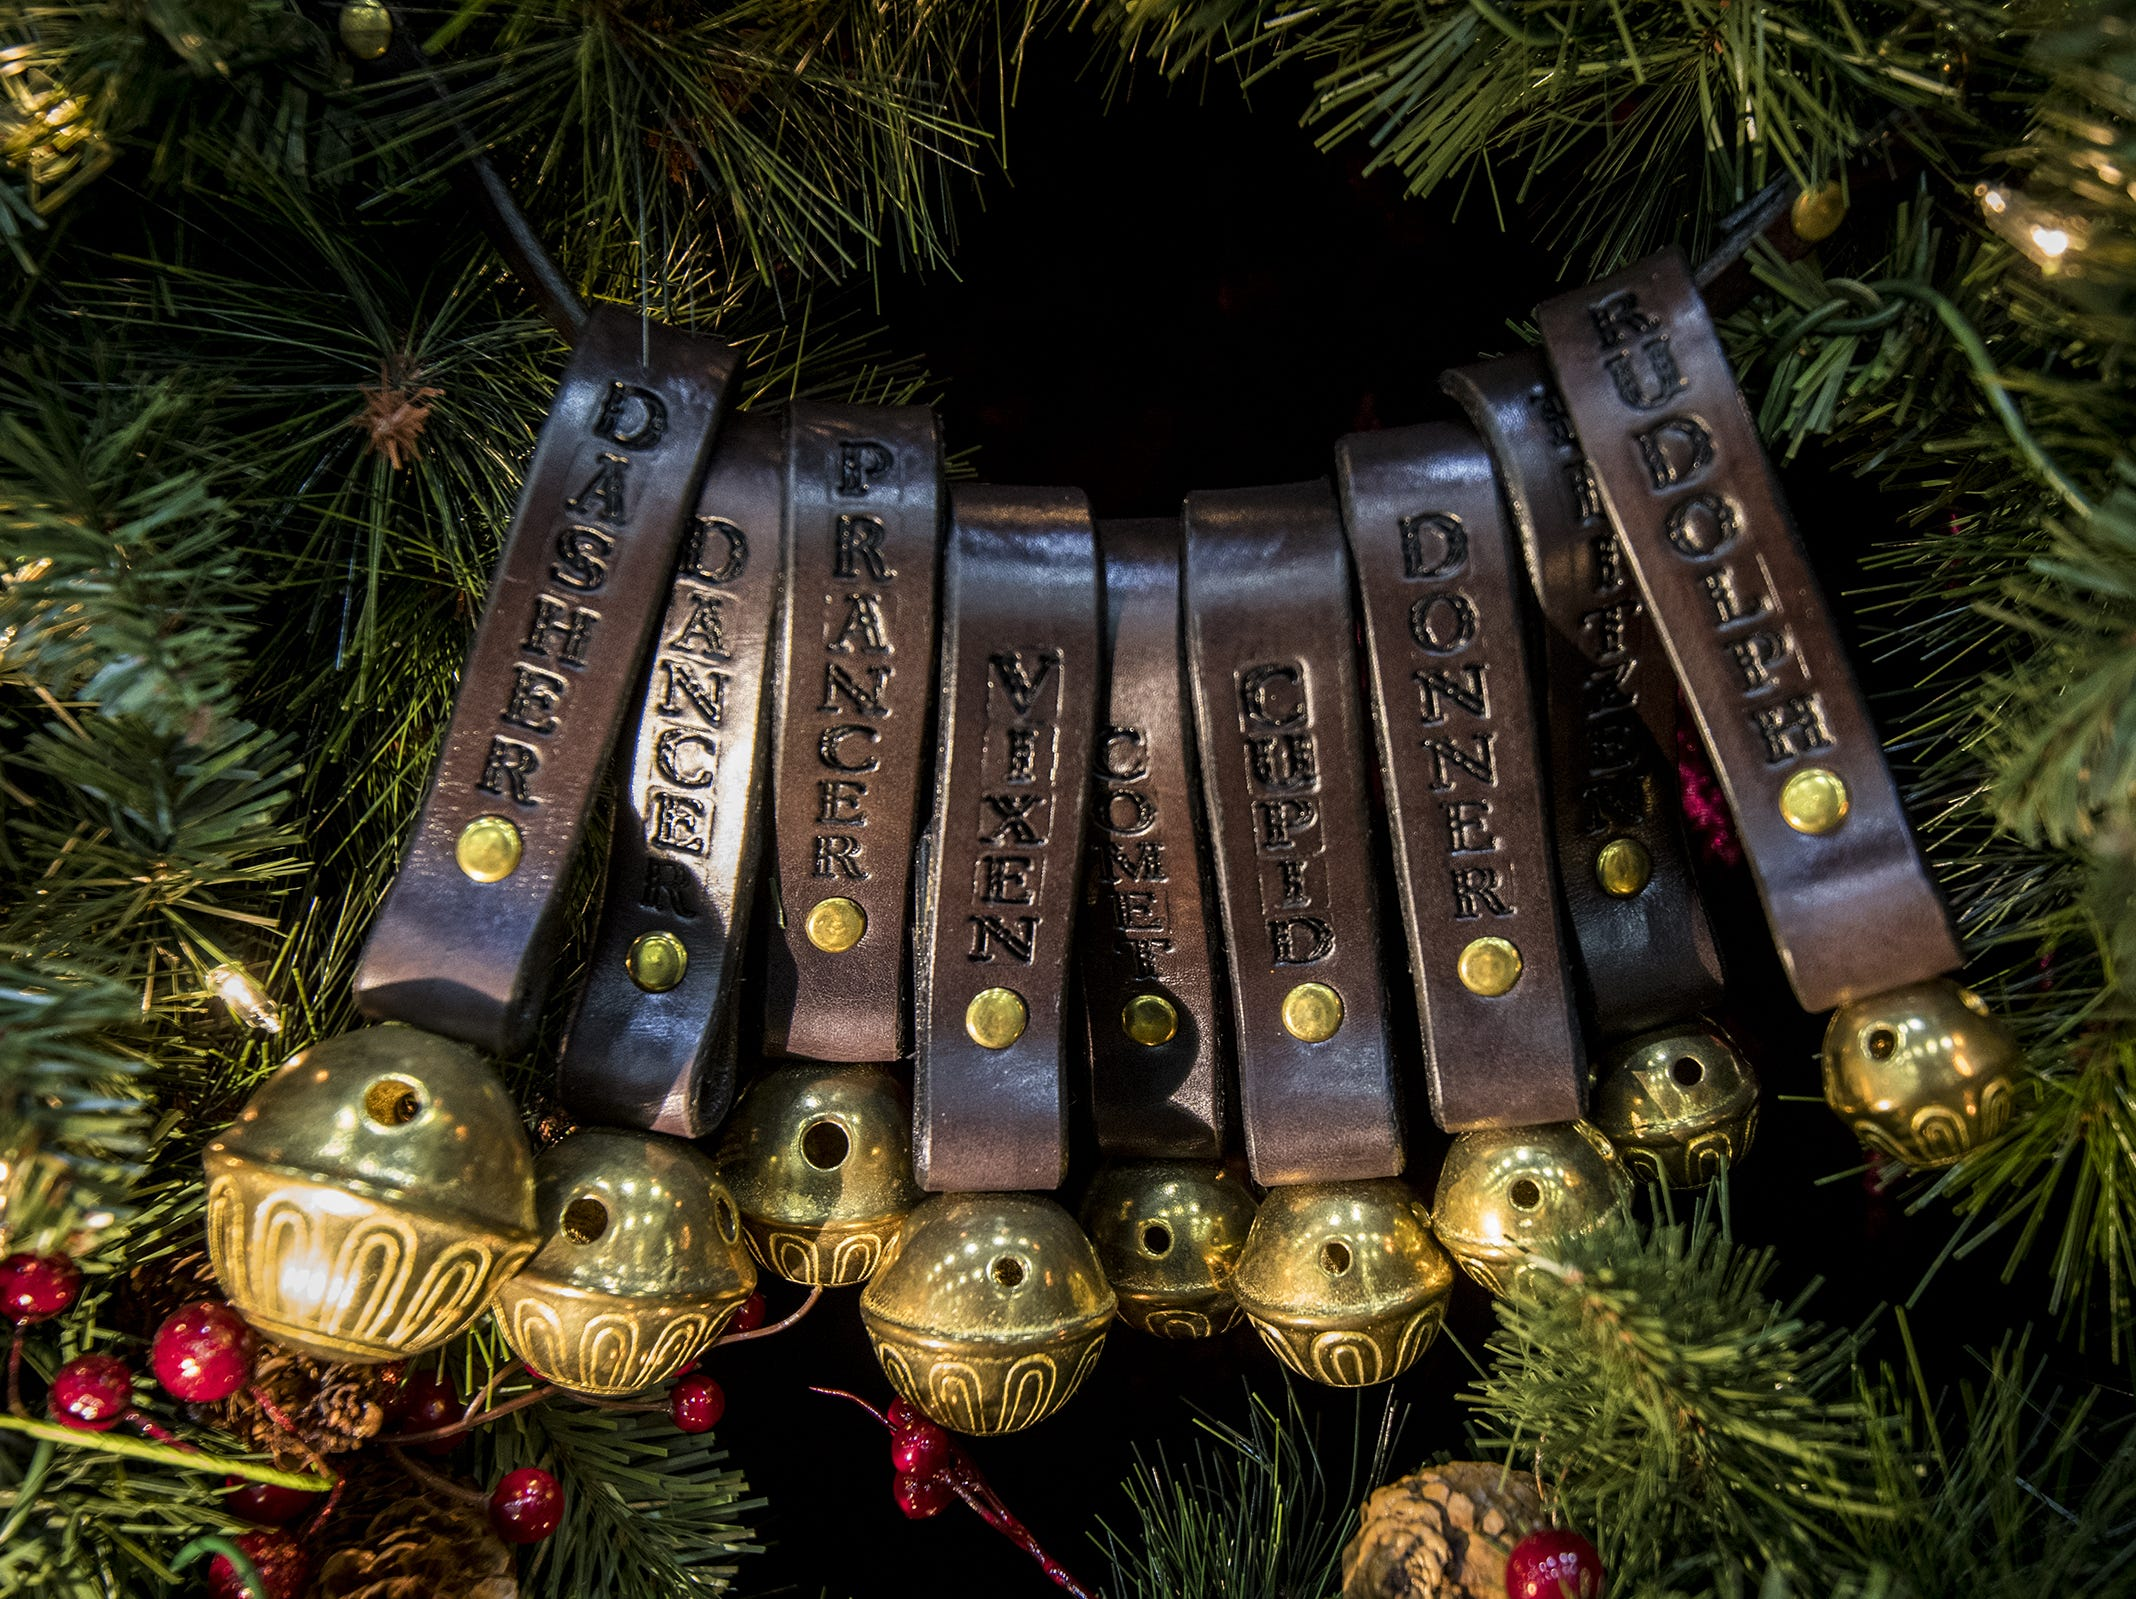 Irish Leather Works sells handmade reindeer bells and other gifts during the Greater Cincinnati Holiday Market at the Duke Energy Center Friday, November 2, 2018 in Cincinnati, Ohio.